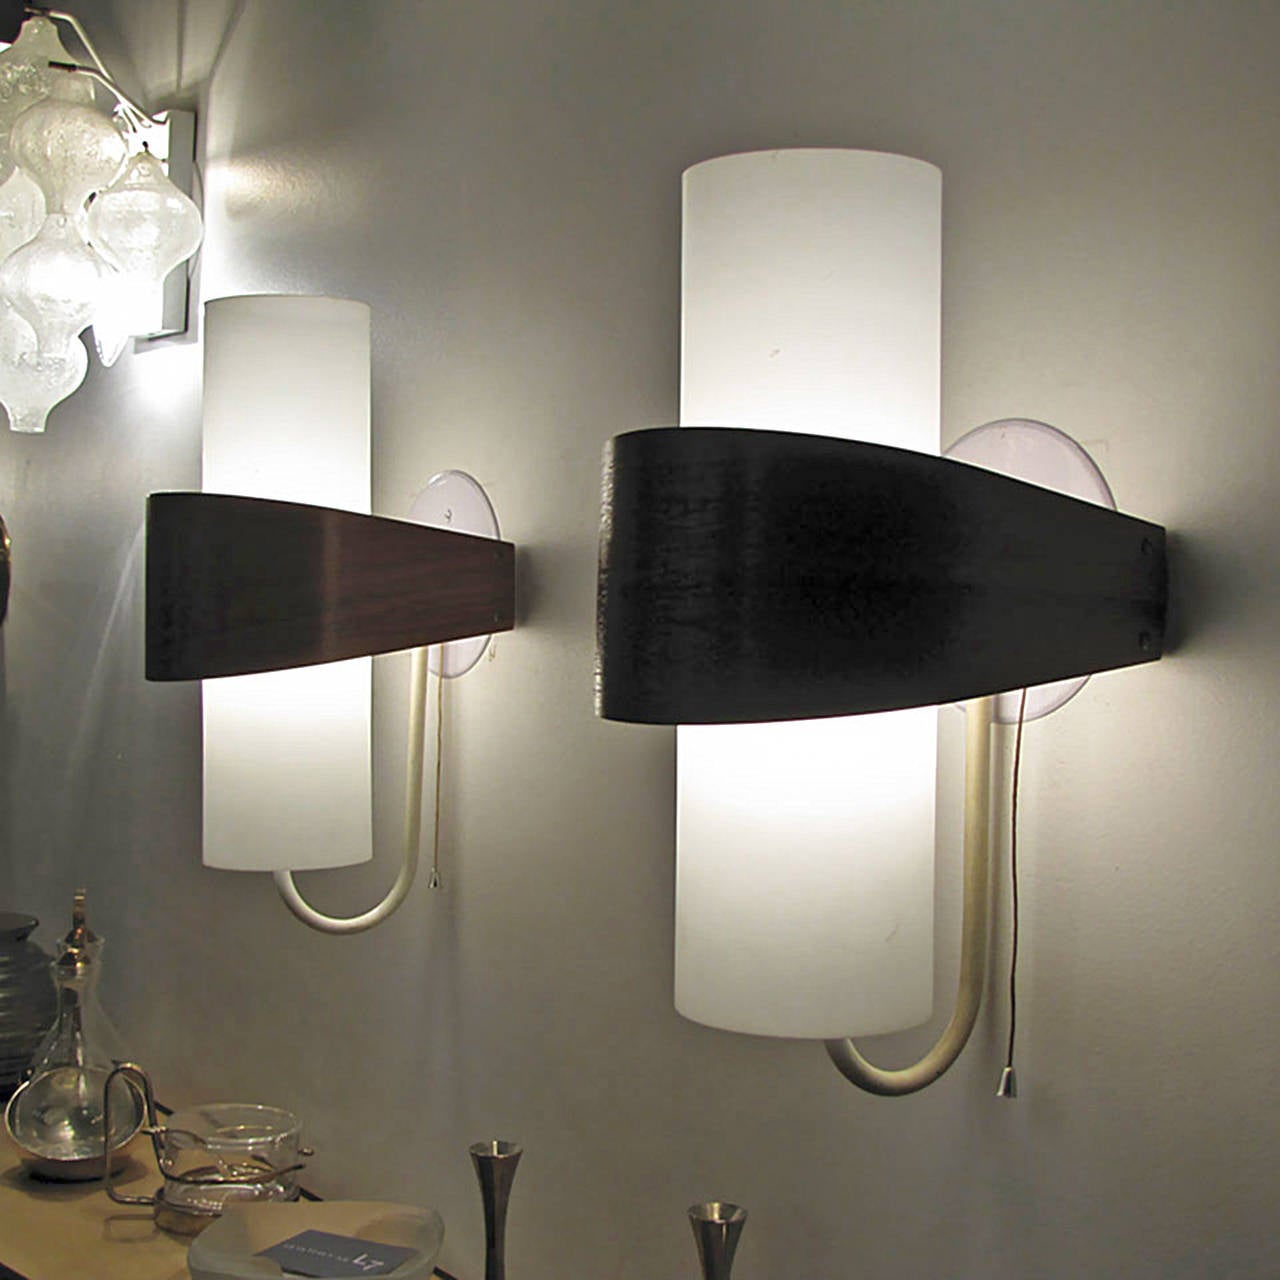 Philips Grace Wall Lights : Philips Wall Lights NX40 For Sale at 1stdibs